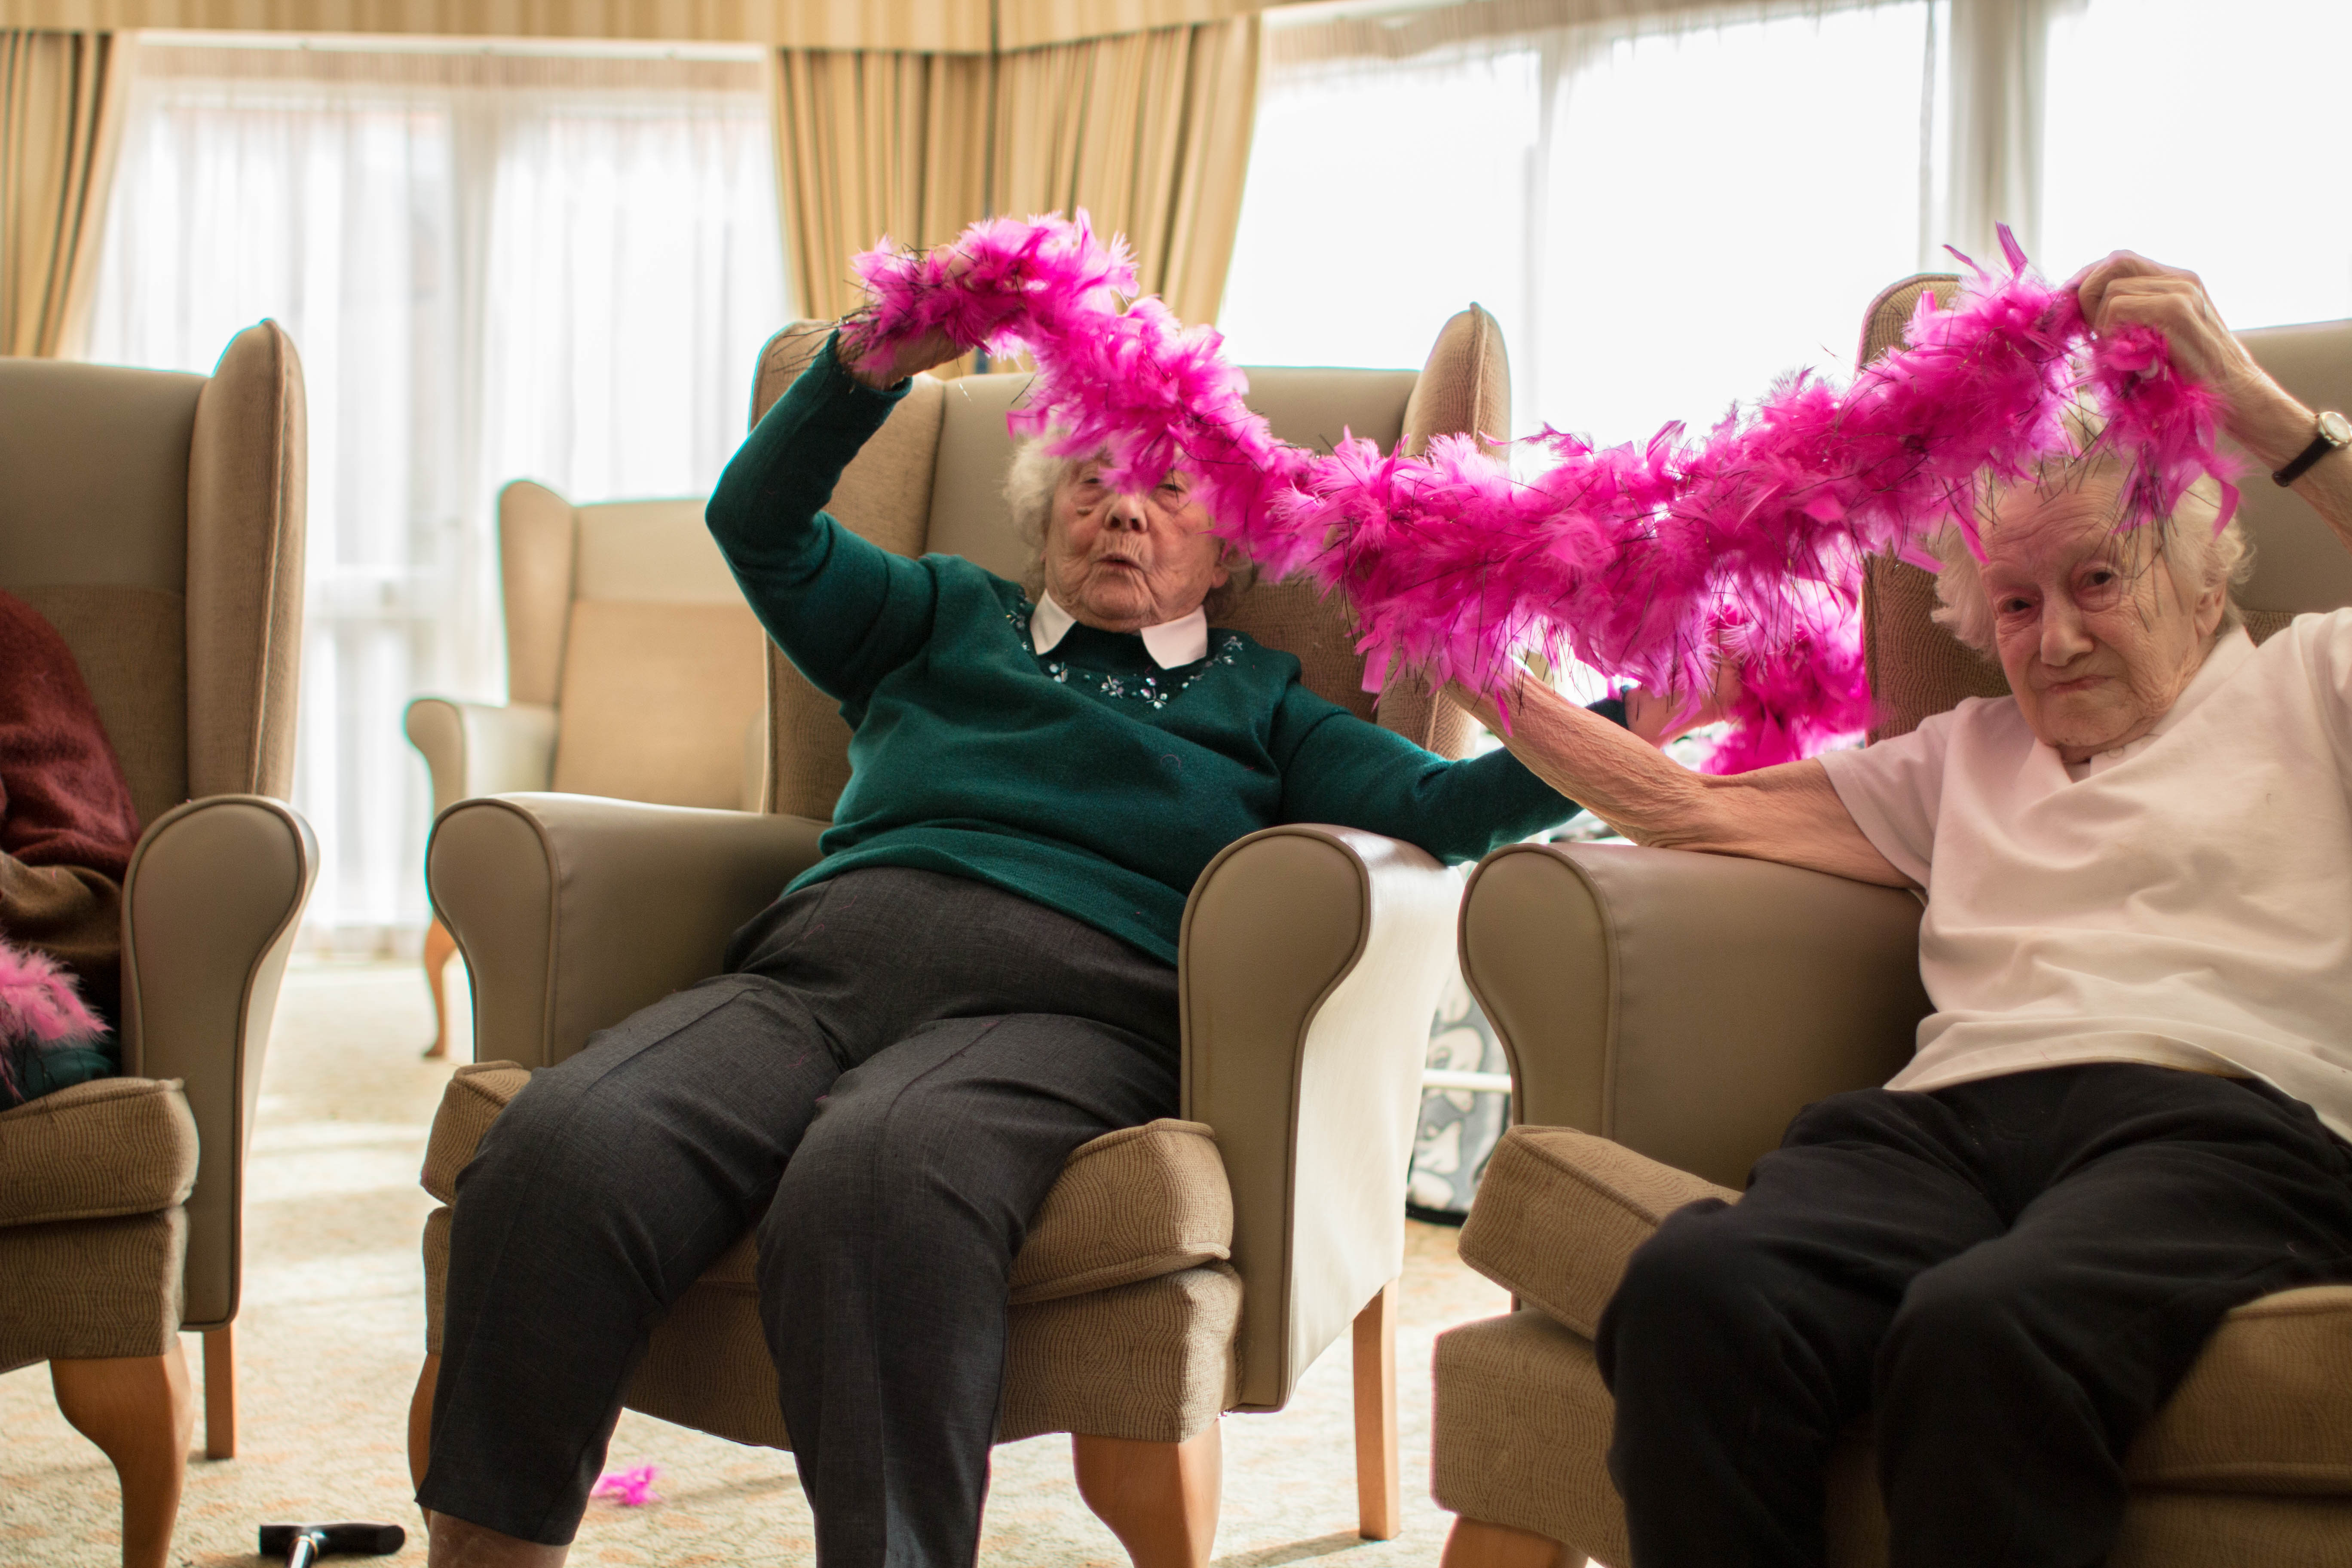 Craig Healthcare West Farm Care Home armchair aerobics ladies having fun with feathers